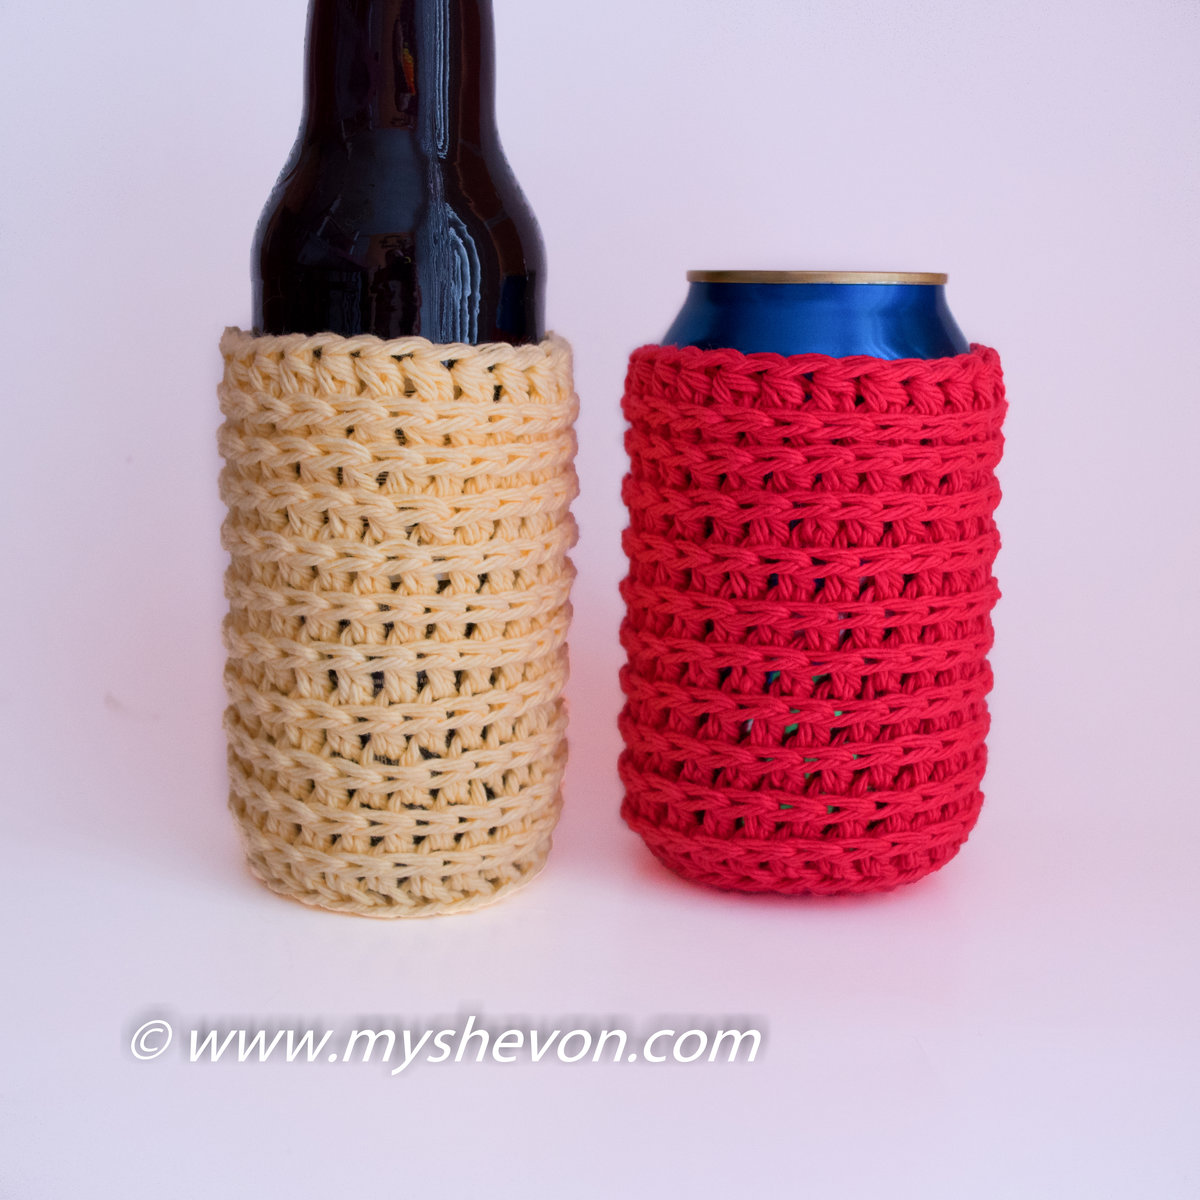 Crochet Can and Bottle Cozy Pattern - Ideal for Outdoor Events